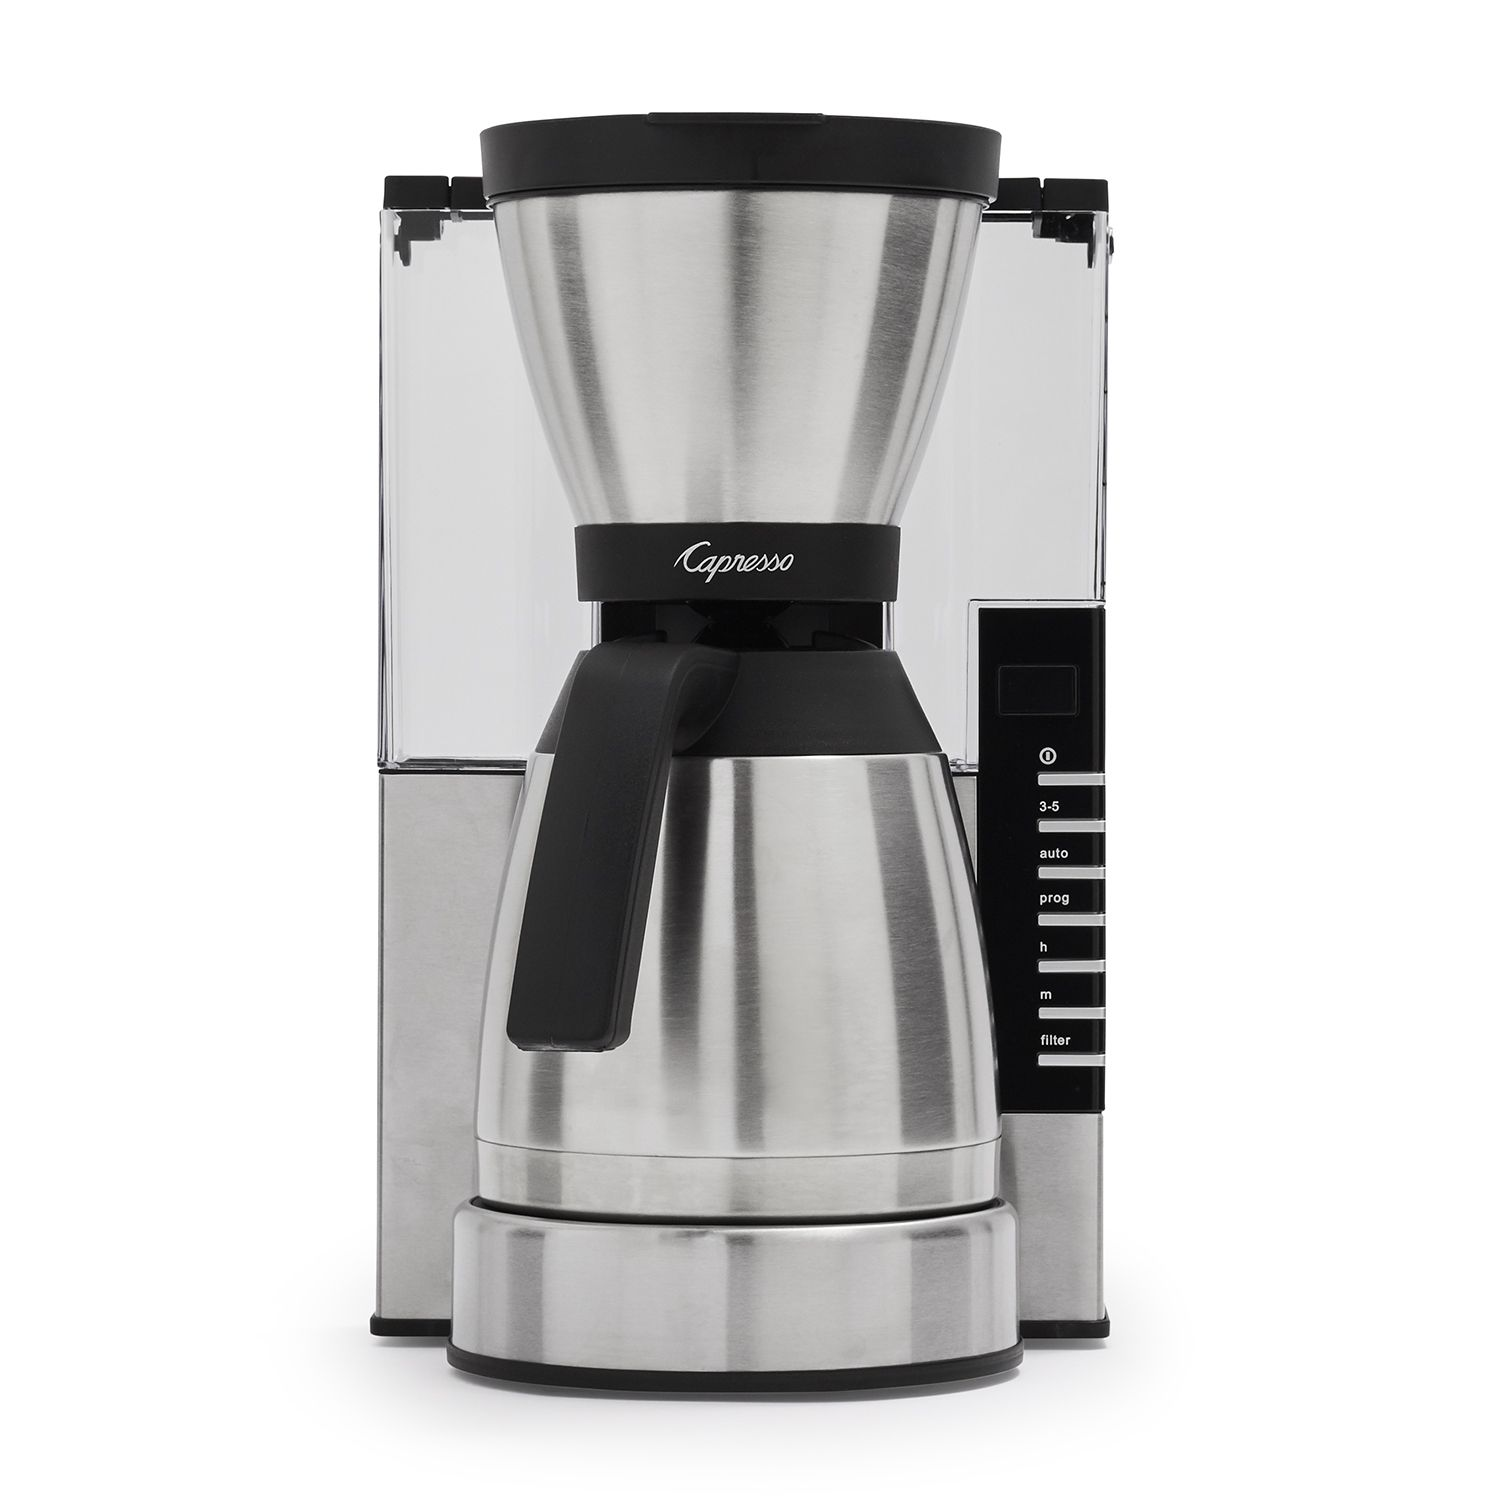 Shop Capresso 10 Cup Rapid Brew Coffee Maker With Stainless Steel Thermal Carafe And More From Sur La Table Cuisinart Coffee Maker Coffee Maker Coffee Brewing